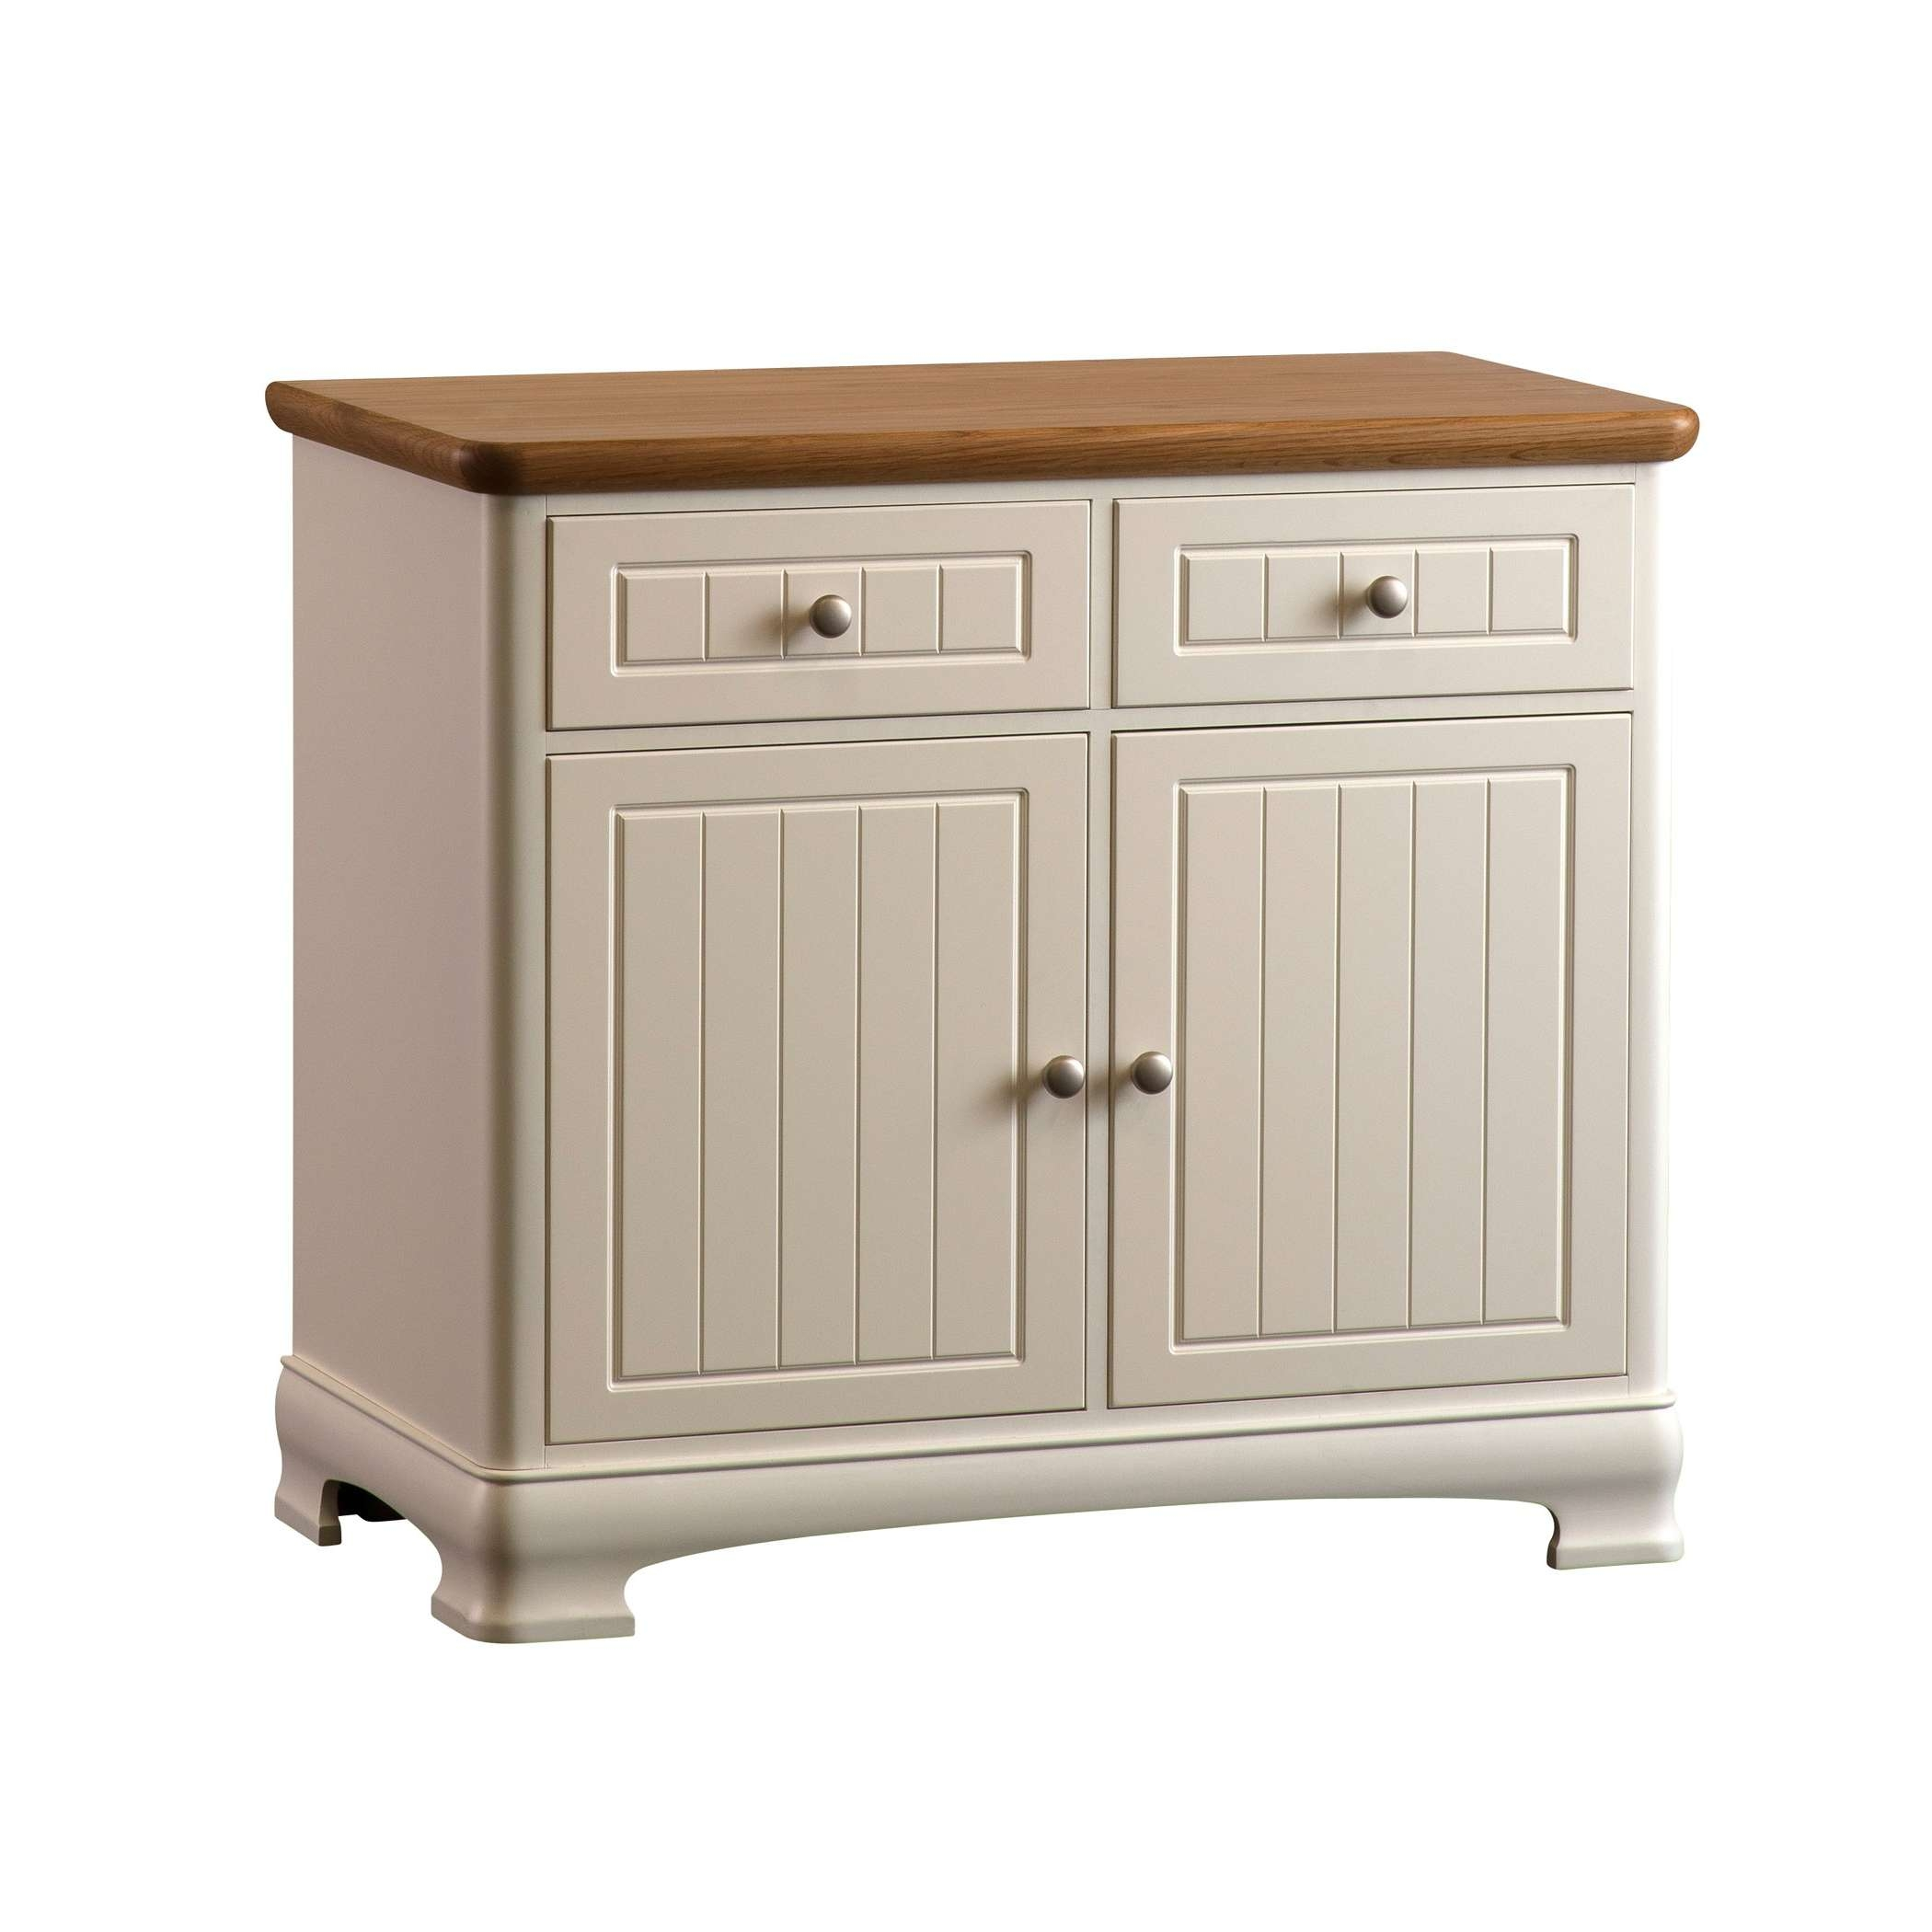 Painted Small Two Door Sideboard With Two Drawers | Gola Furniture Uk Within Small Sideboards (View 9 of 20)